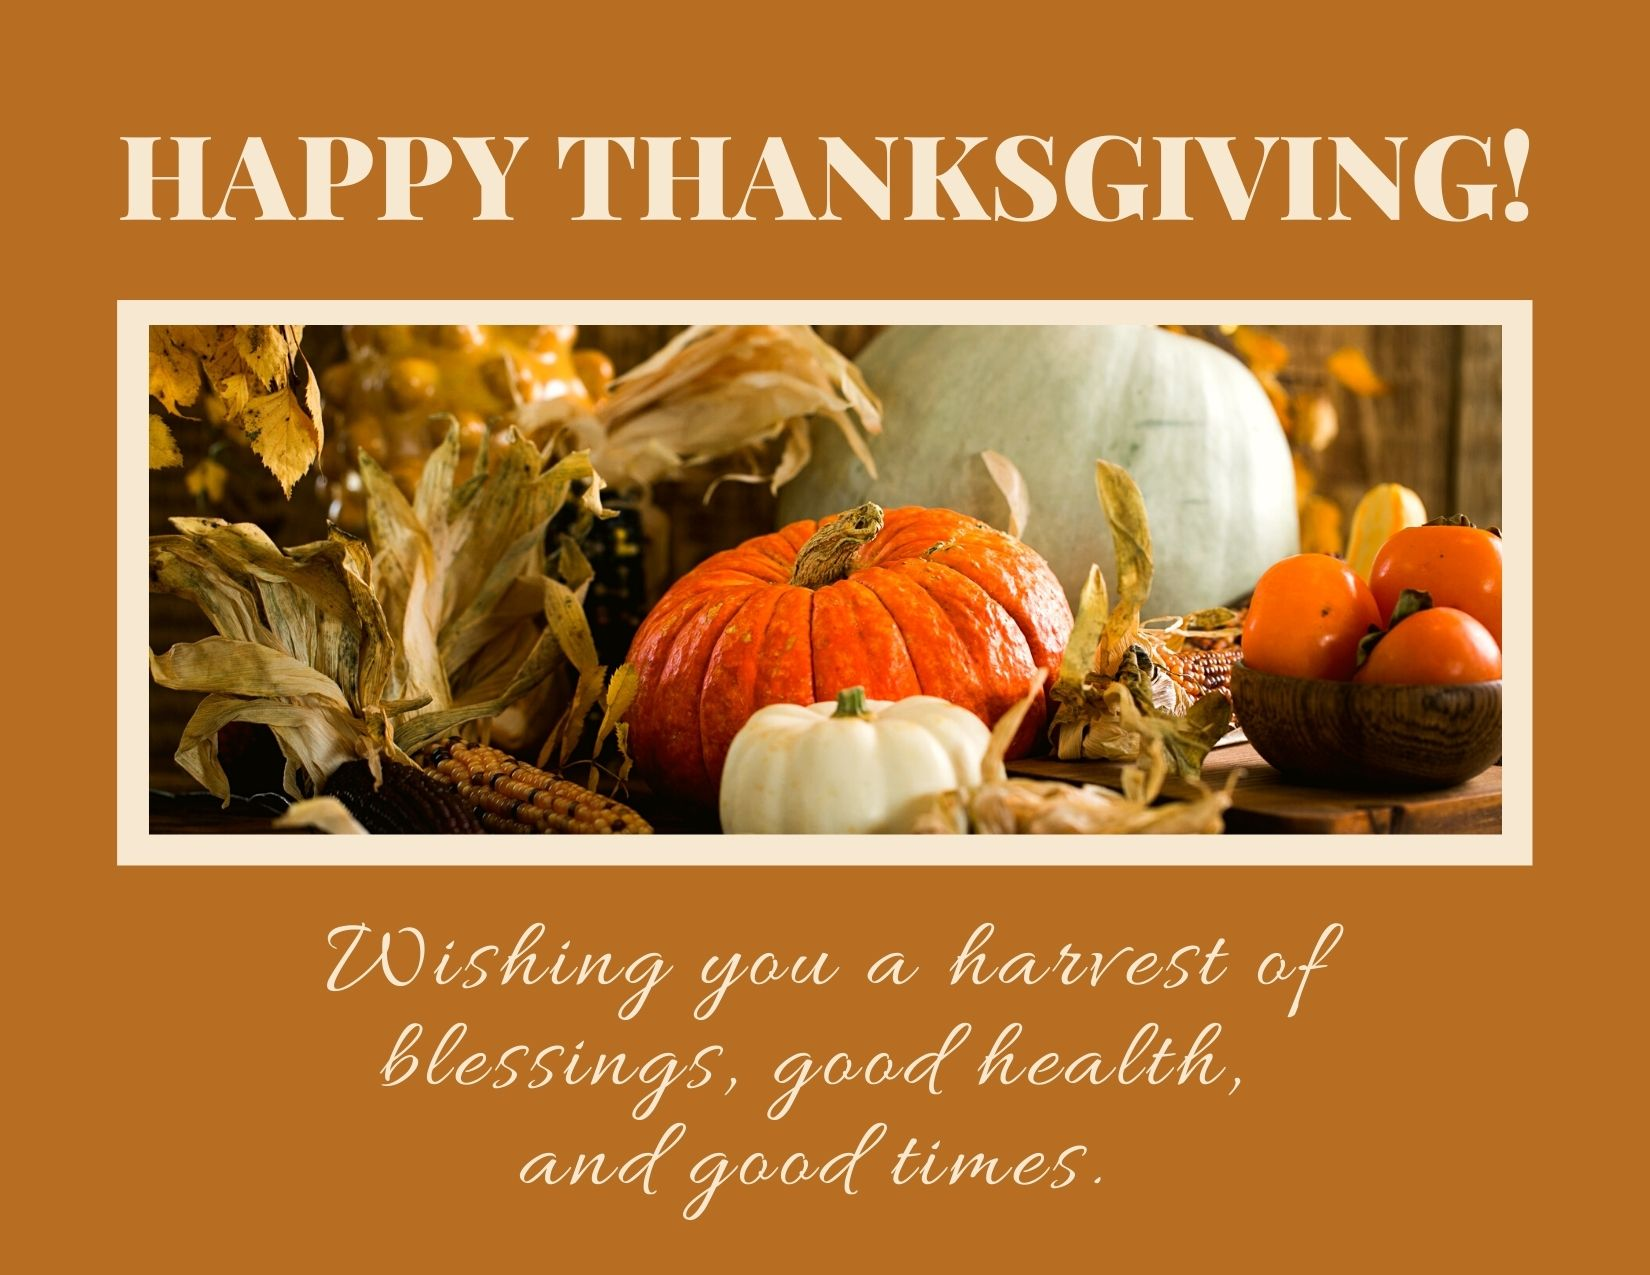 TEXT: Happy Thanksgiving! Wishing you a harvest of blessings, good health, and good times. Image: Brown background with picture of a cornucopia